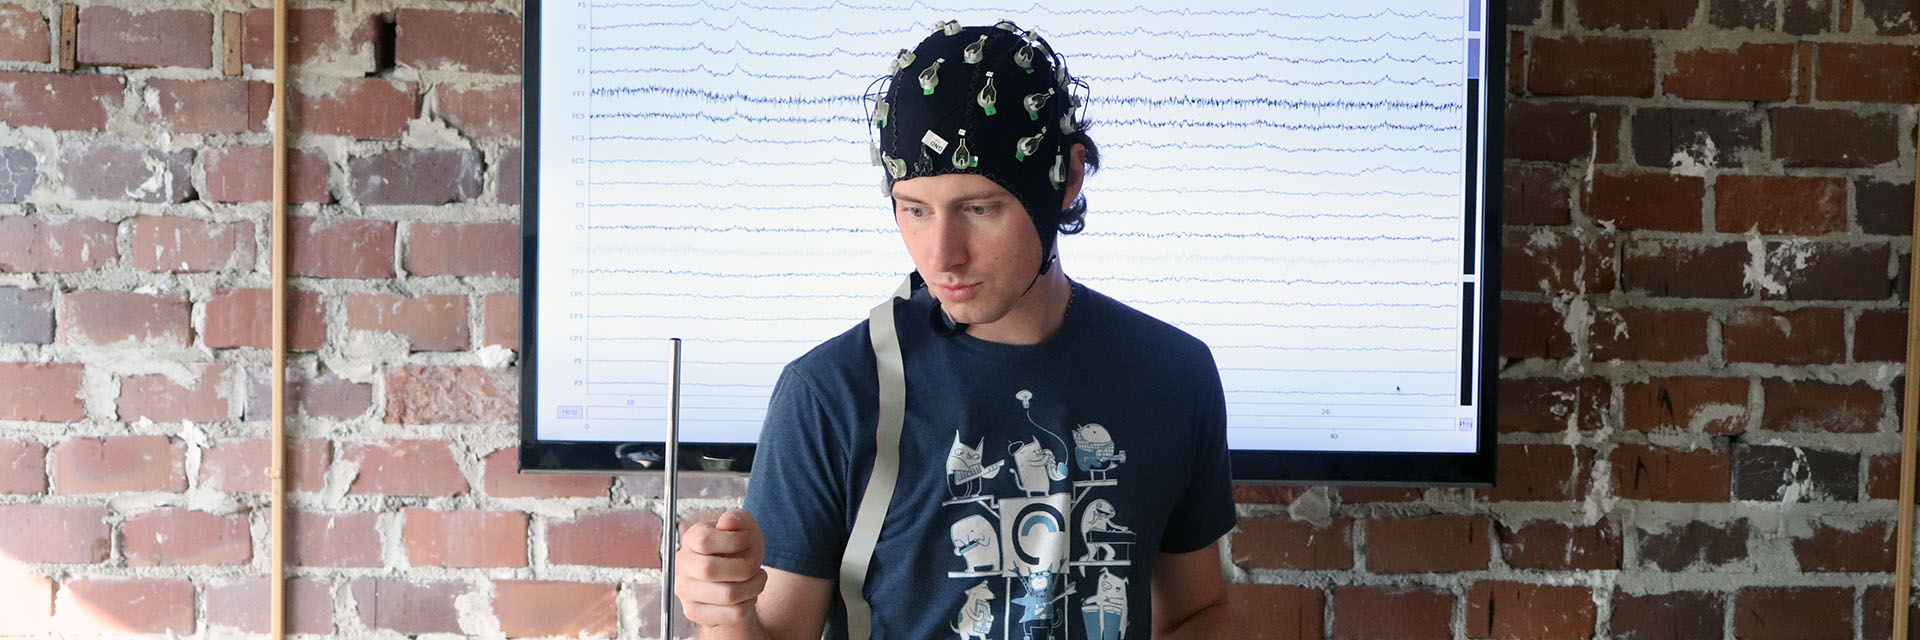 Ph.D. Mike Winters utilizing a brainscanner in an experiment.